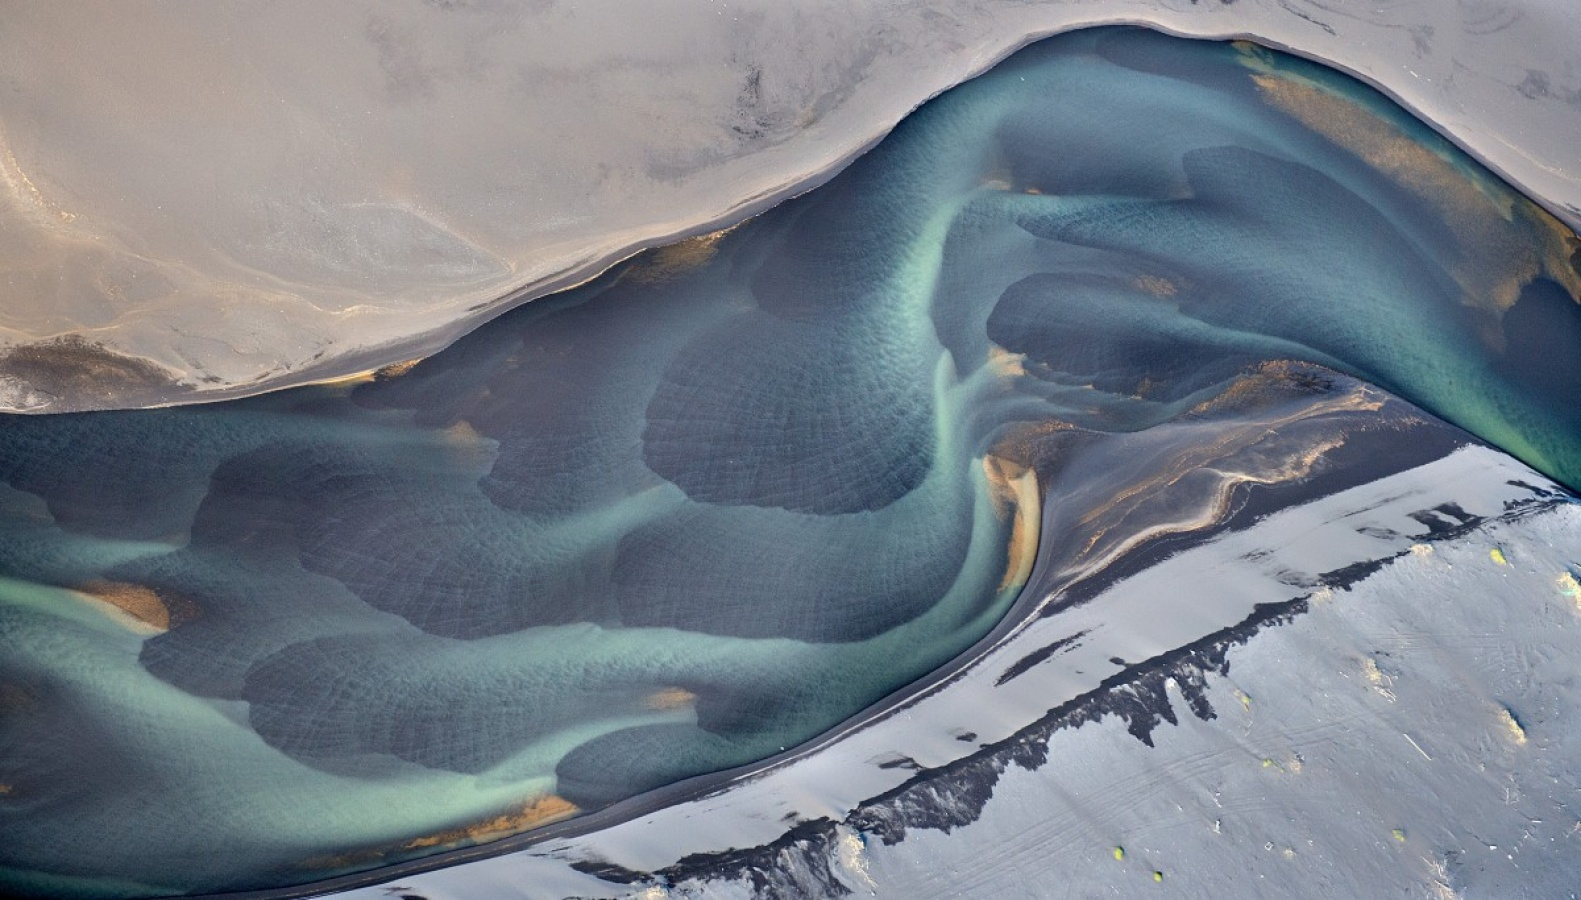 petals-volcanic-river-iceland-andre-ermolaev